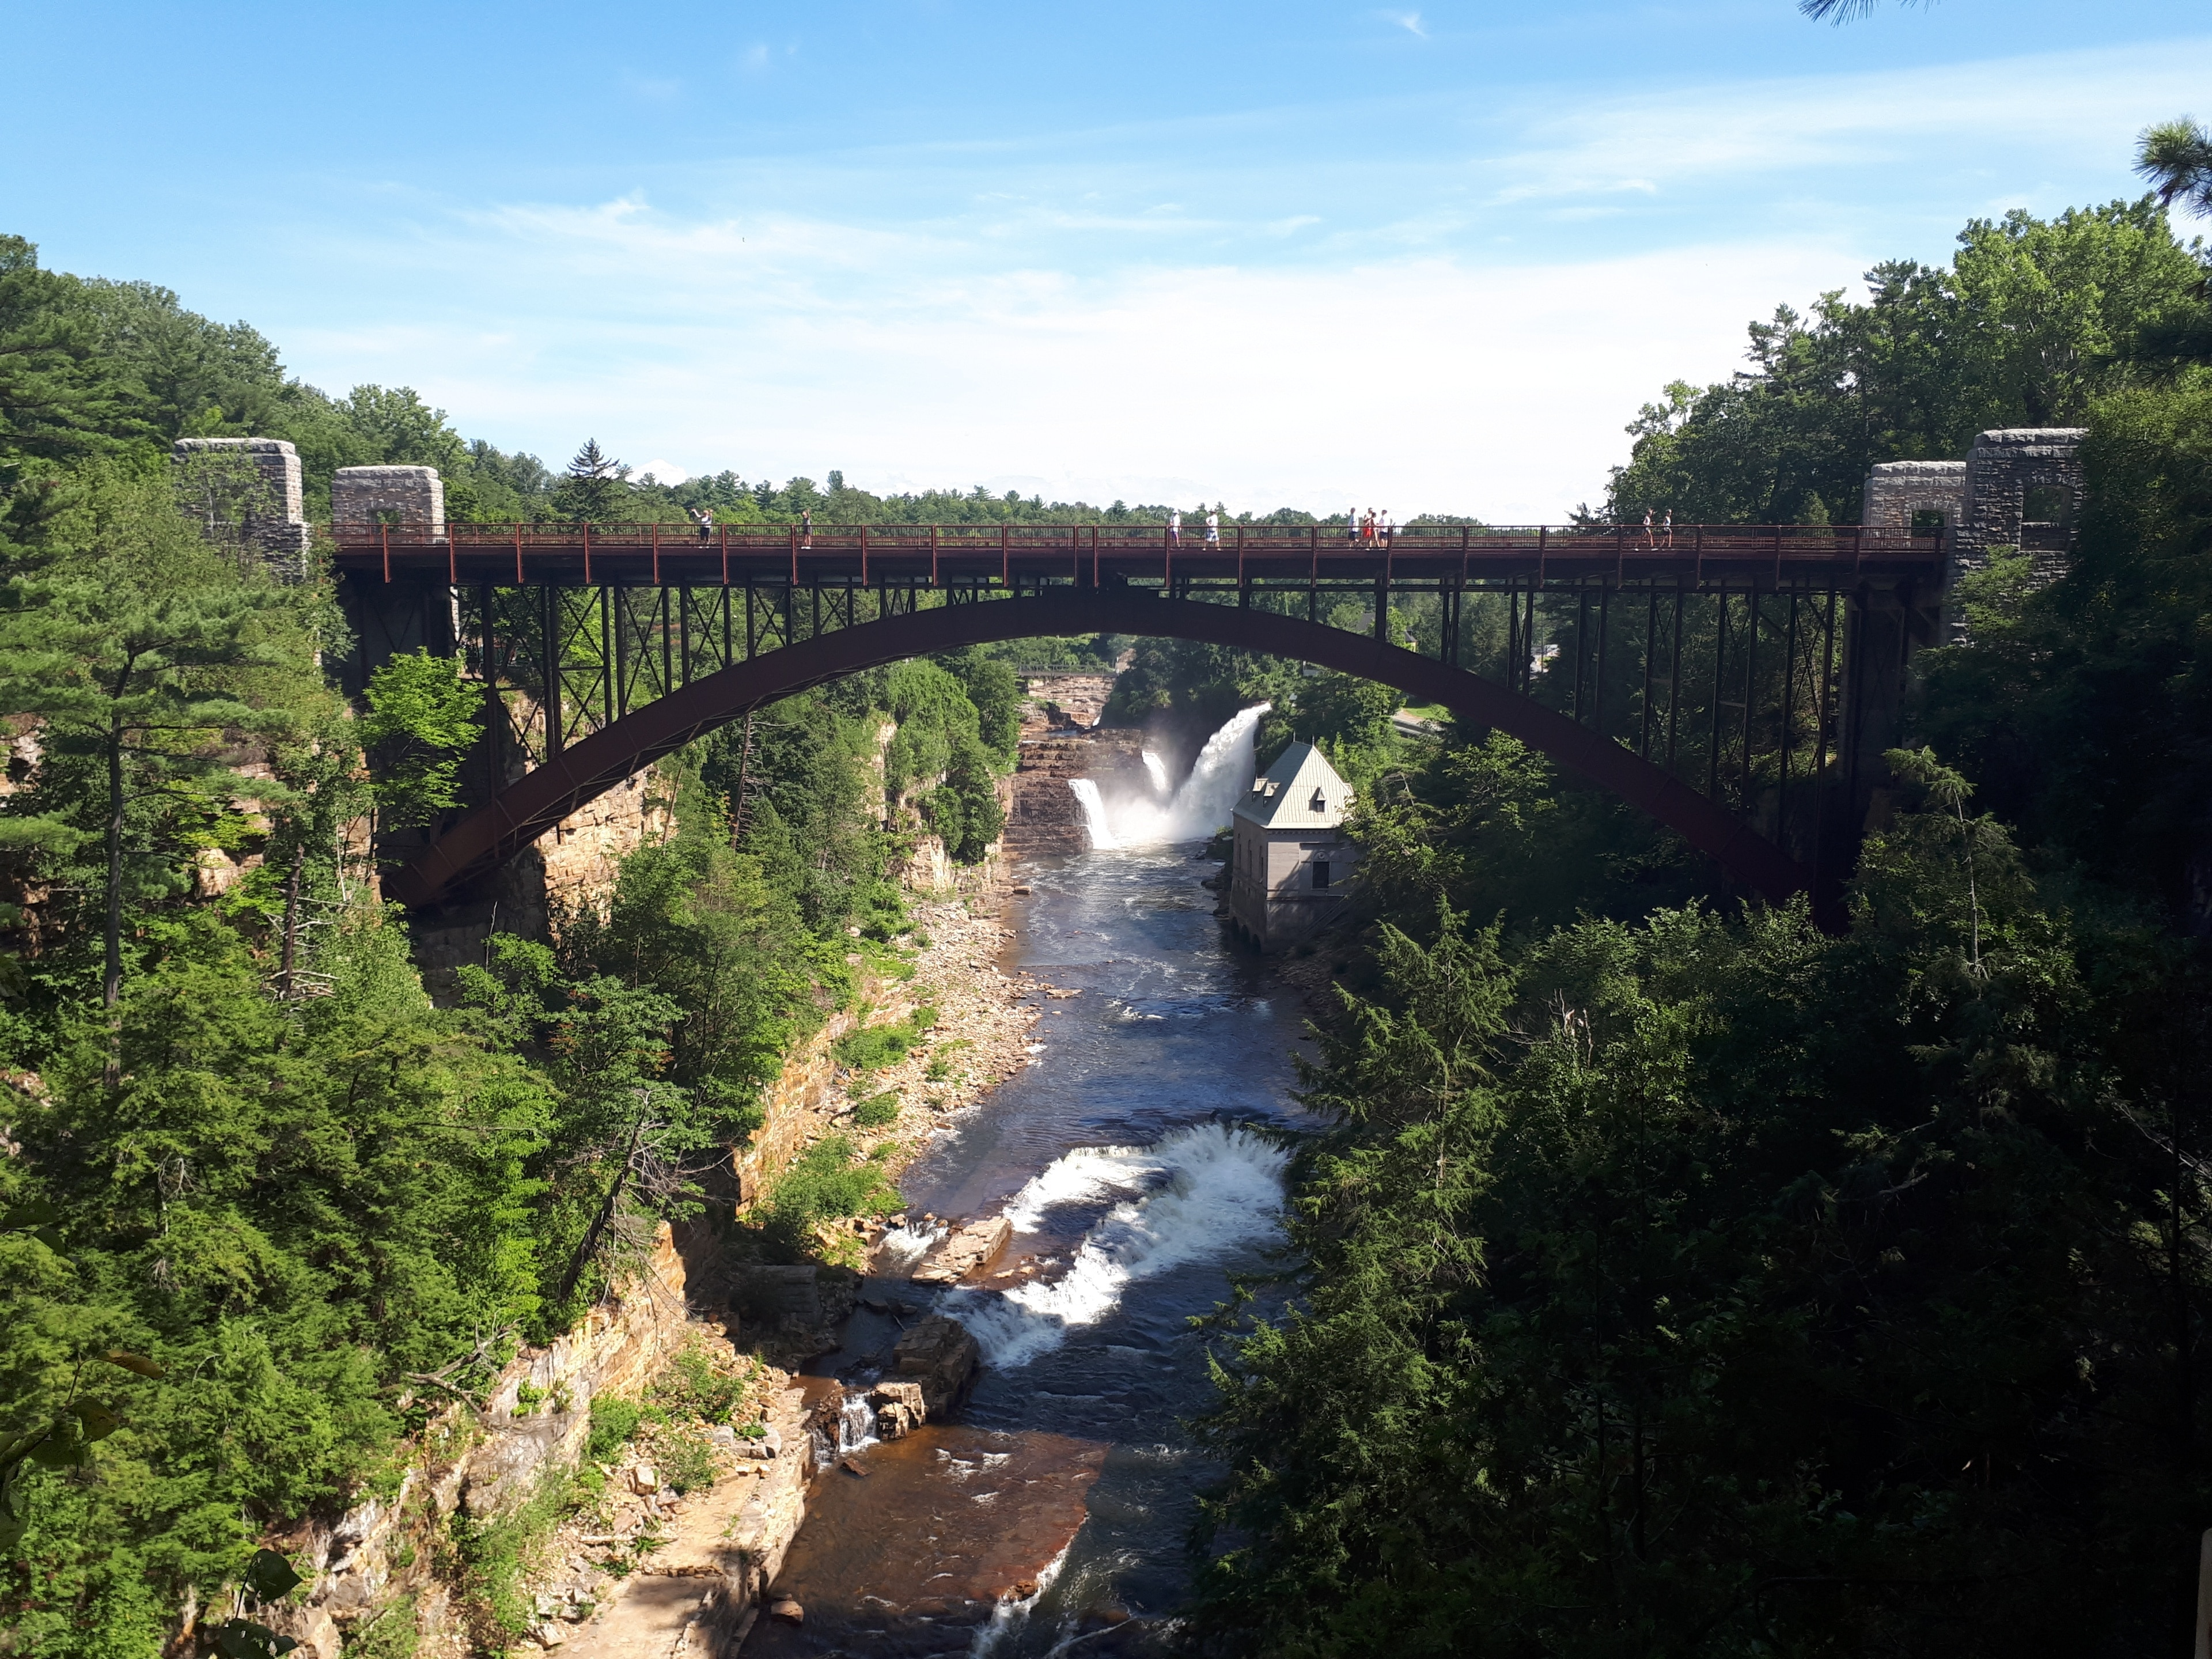 Ausable Chasm, Peru, Keeseville, New York, United States of America